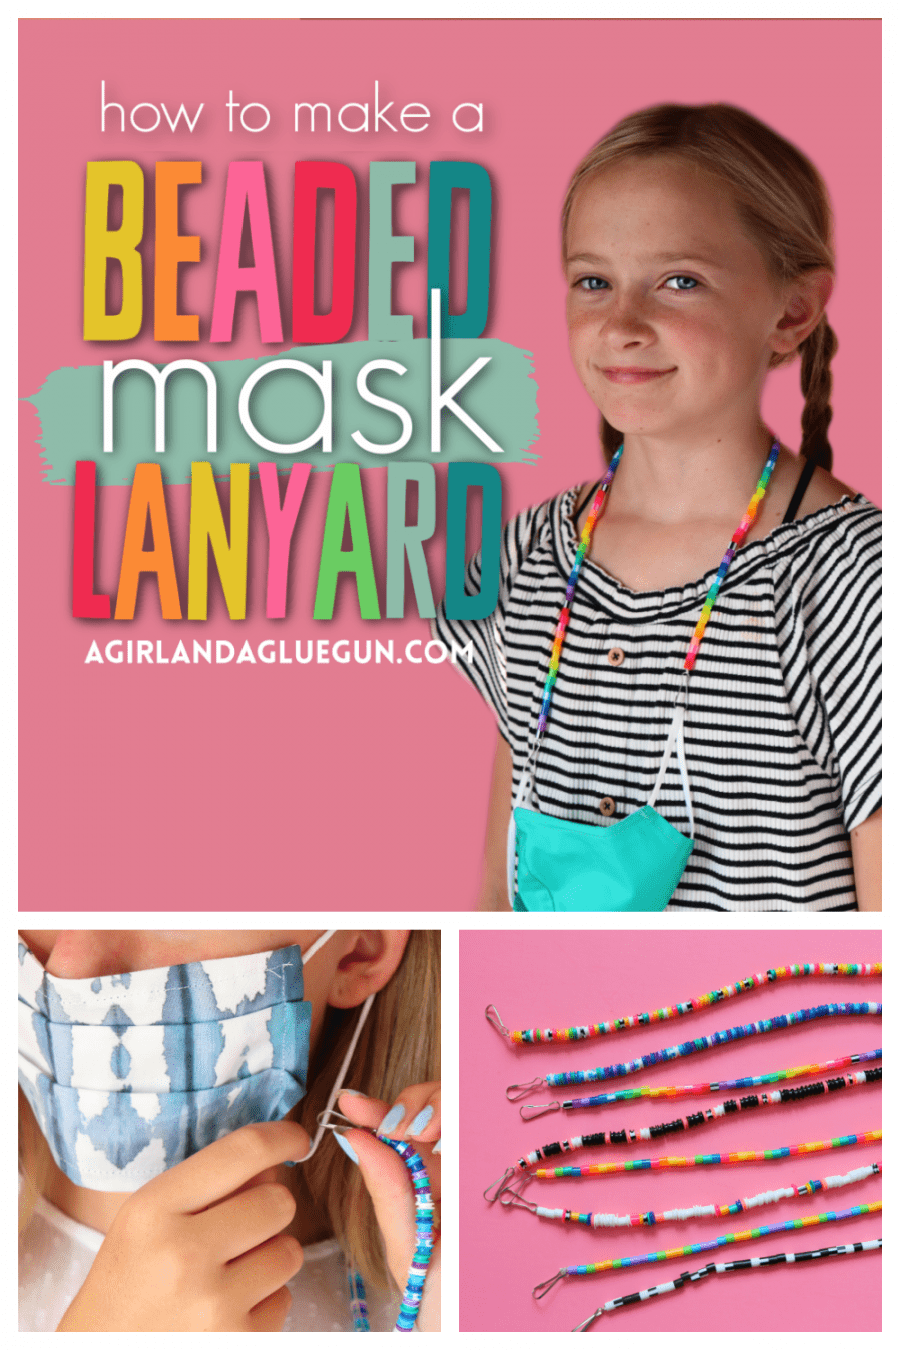 how-to-make-a-beaded-mask-lanyard